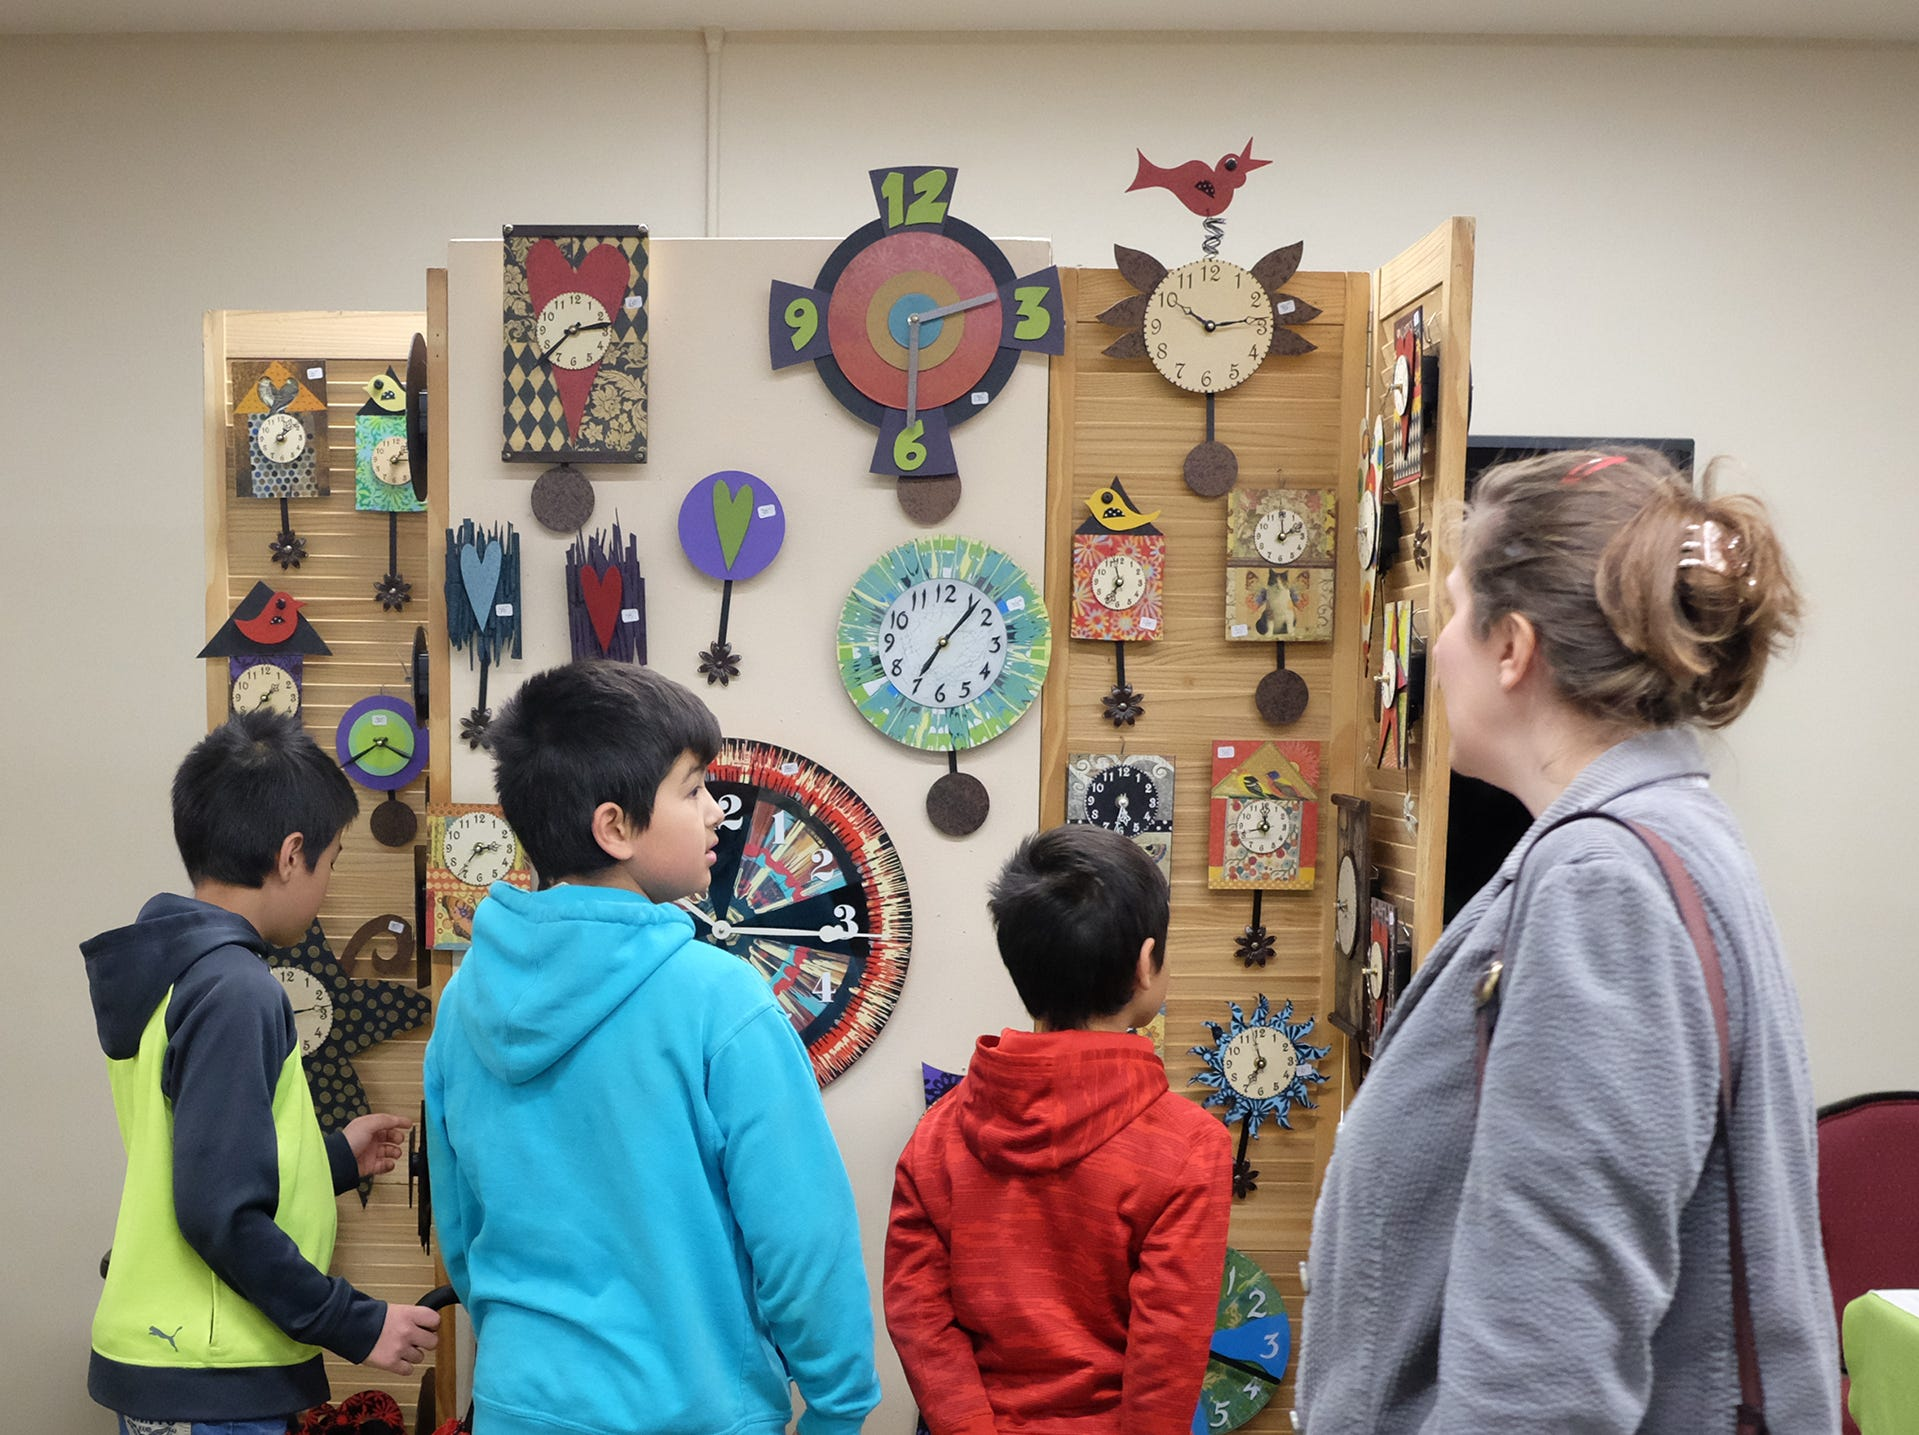 These youngsters are curious about these clocks on display but are told they can't touch them at the MSU Winter Arts & Craft Show Sunday, Dec. 2, 2018.